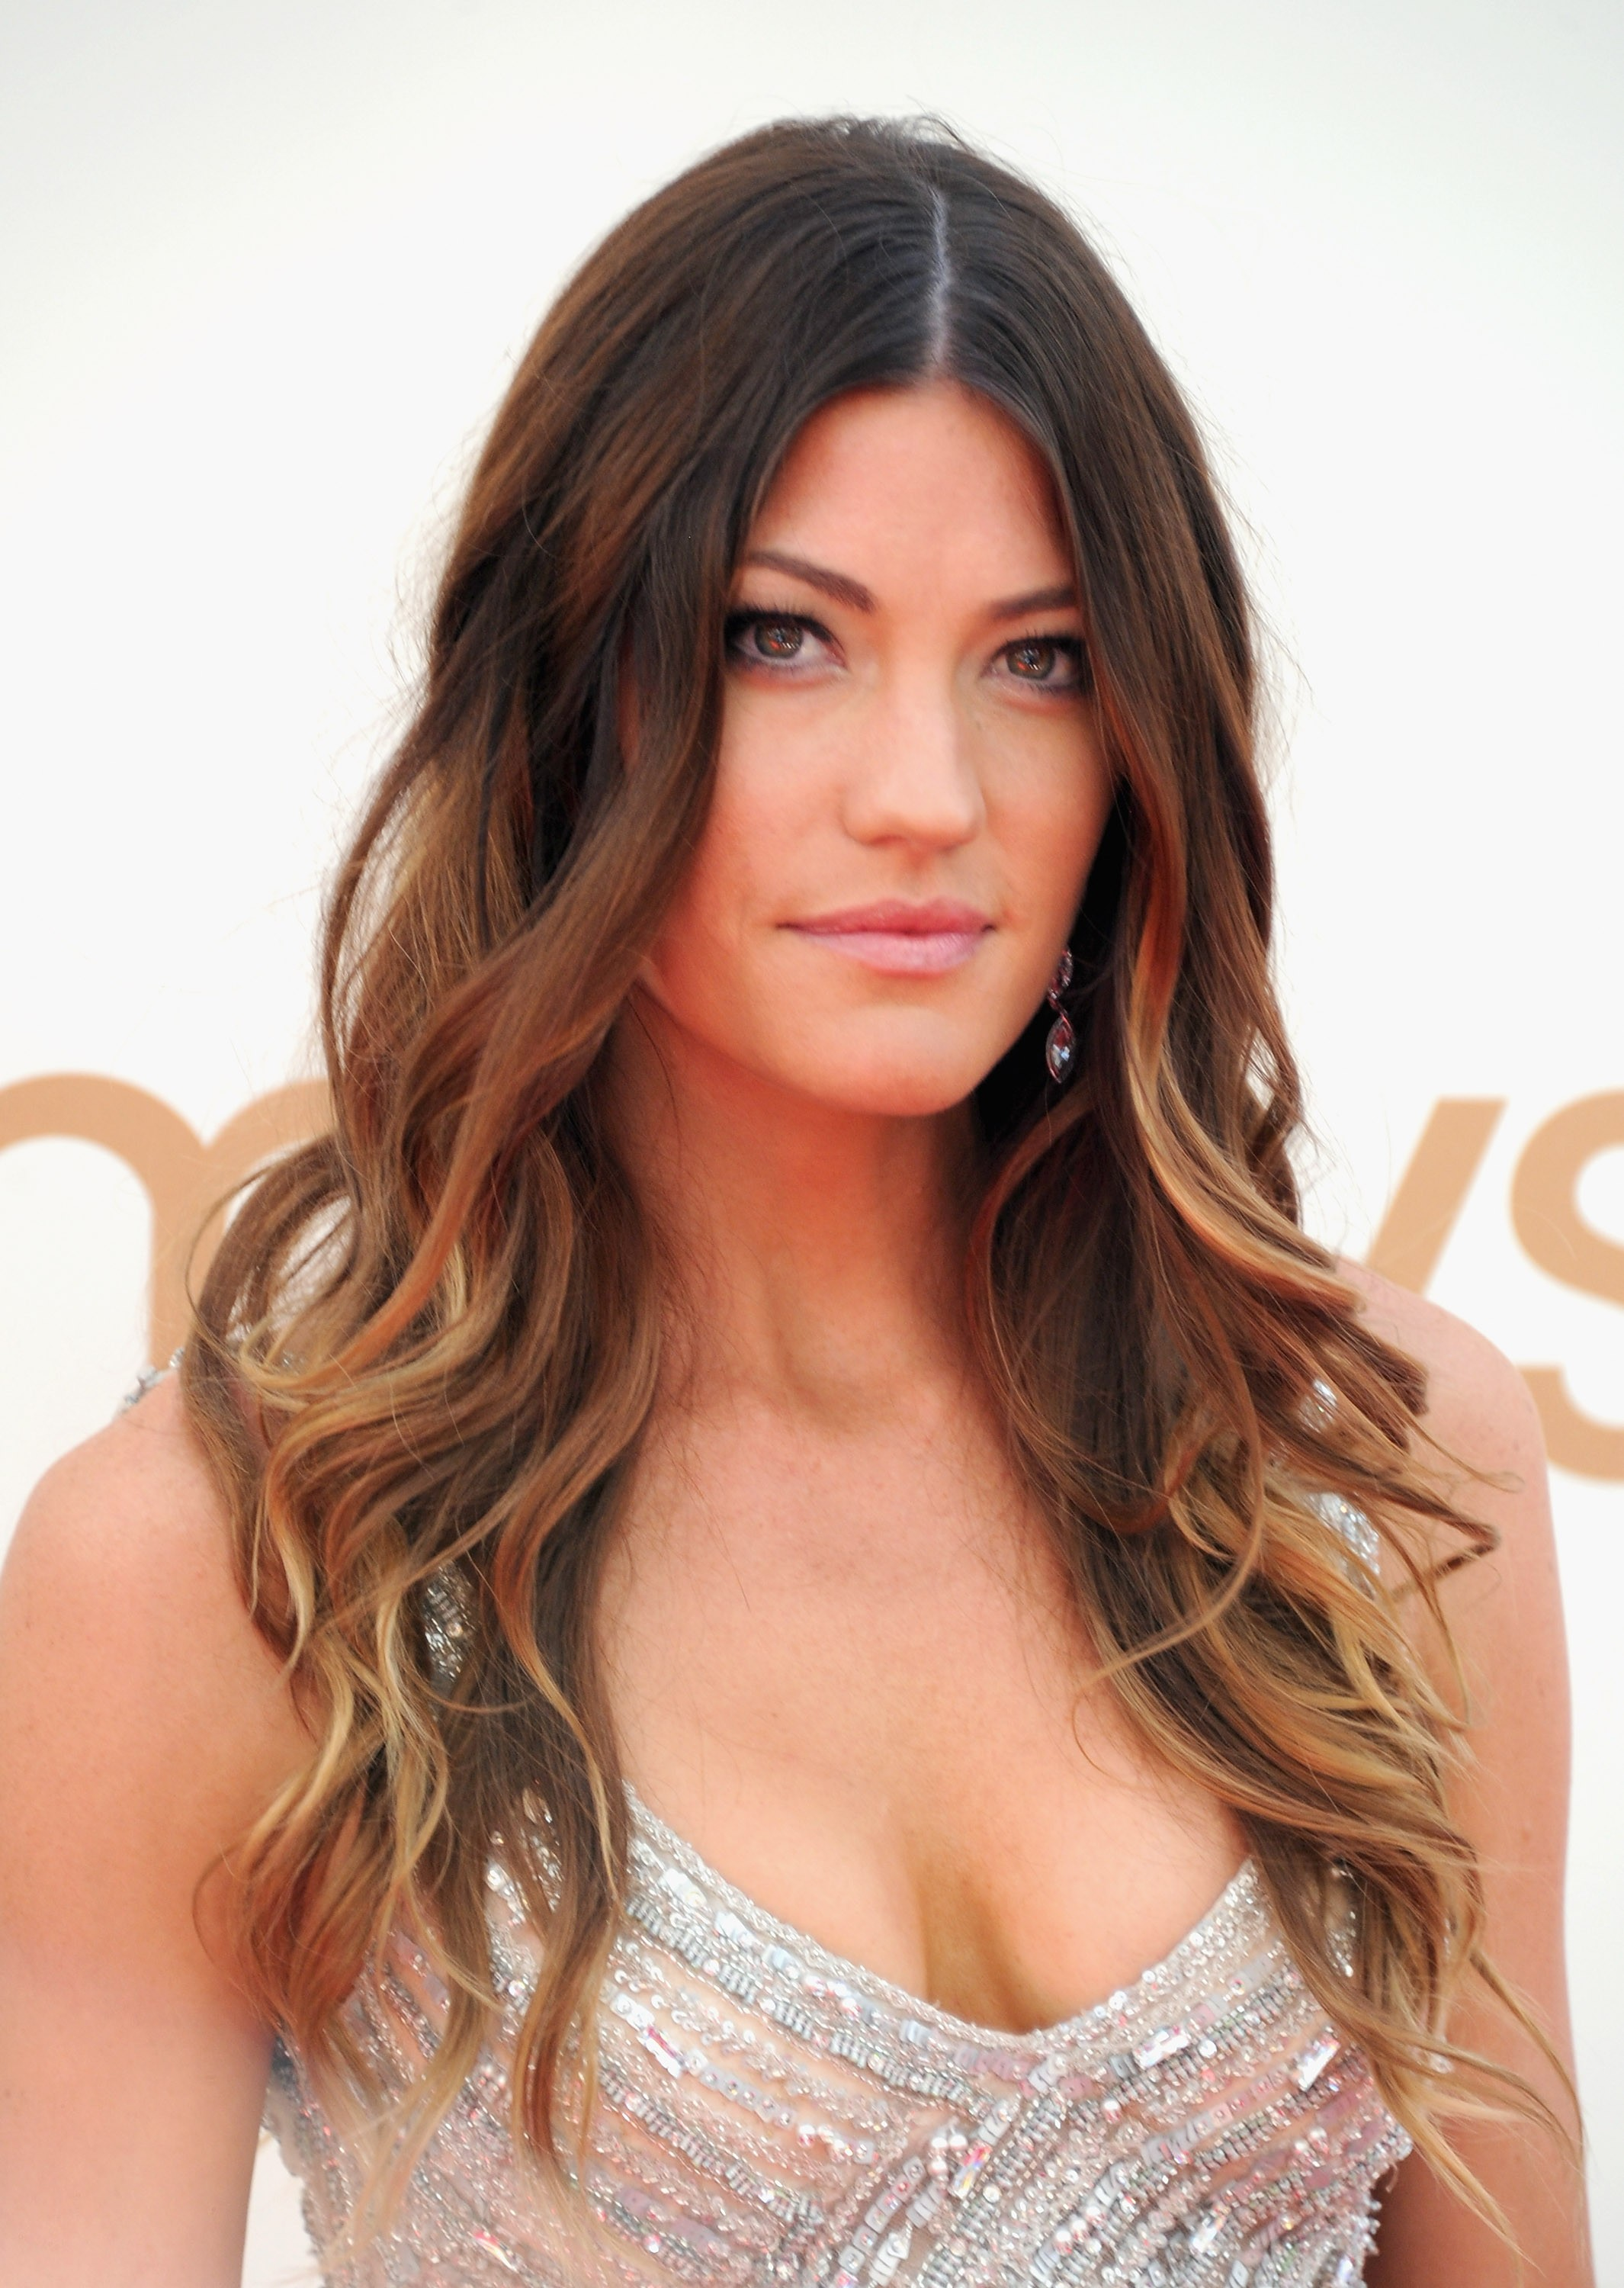 The 38-year old daughter of father Robert Carpenter and mother Catherine Mitchell, 173 cm tall Jennifer Carpenter in 2018 photo